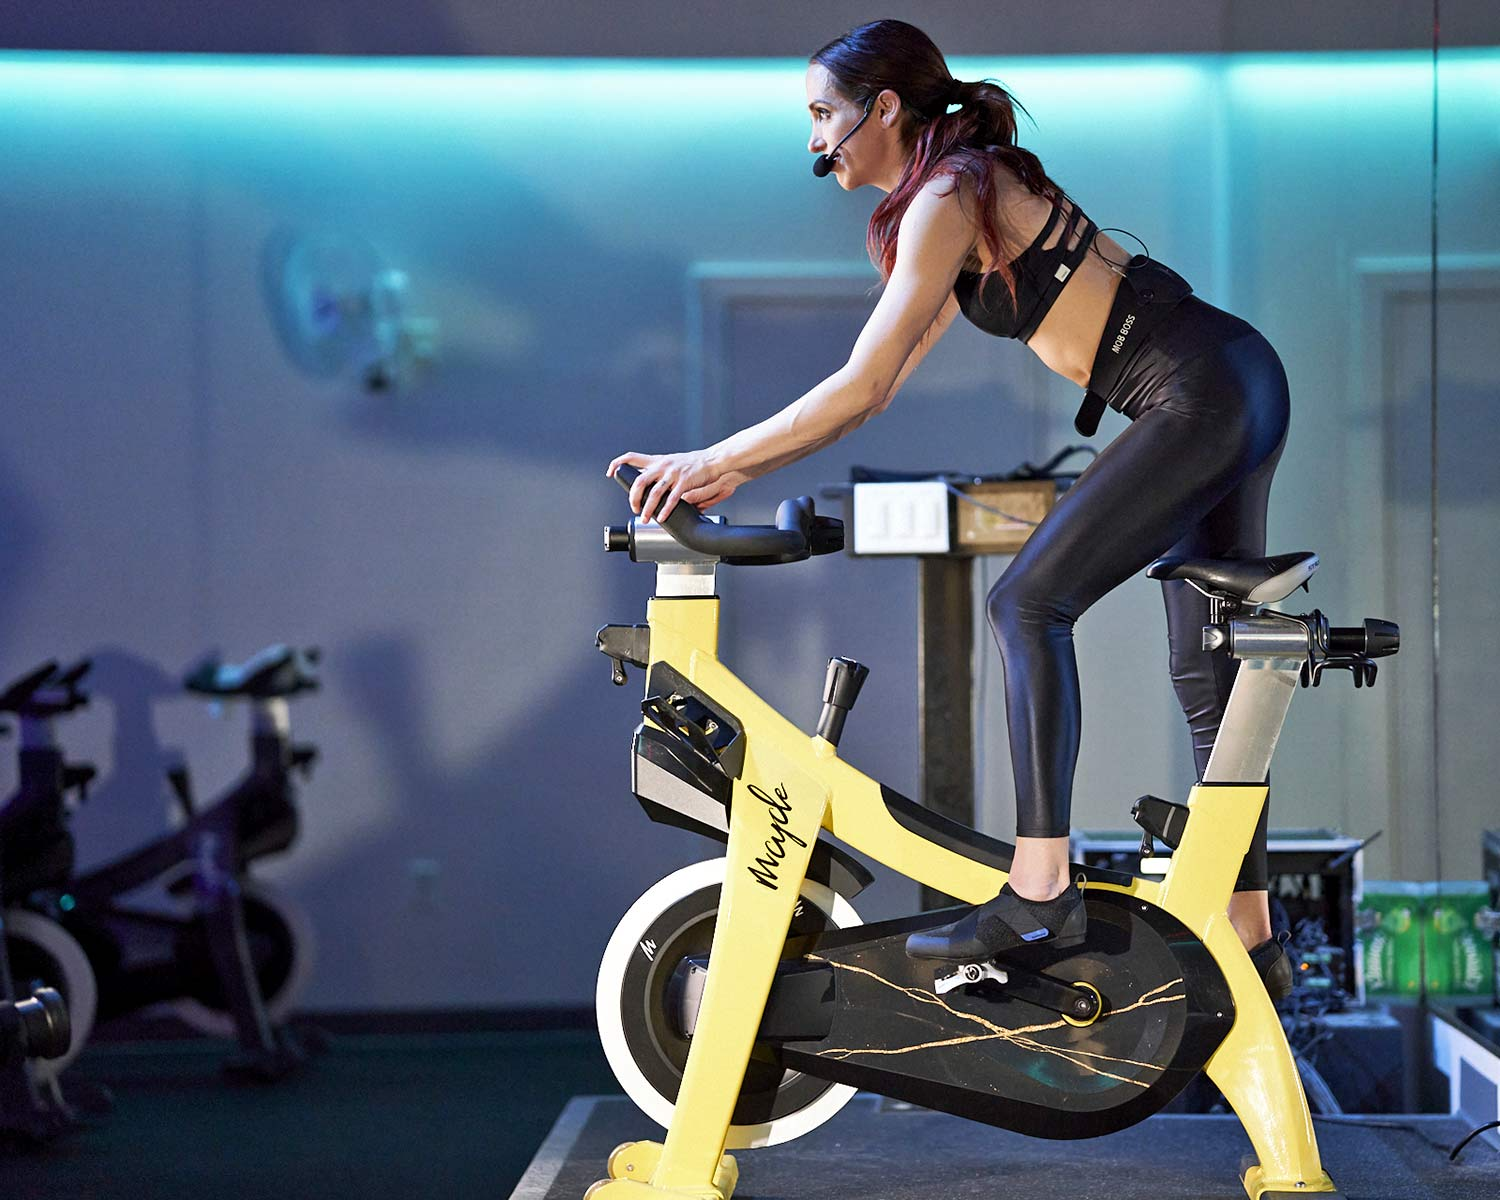 Shimano IC2 walkable indoor cycling spinning shoes, fitness studio